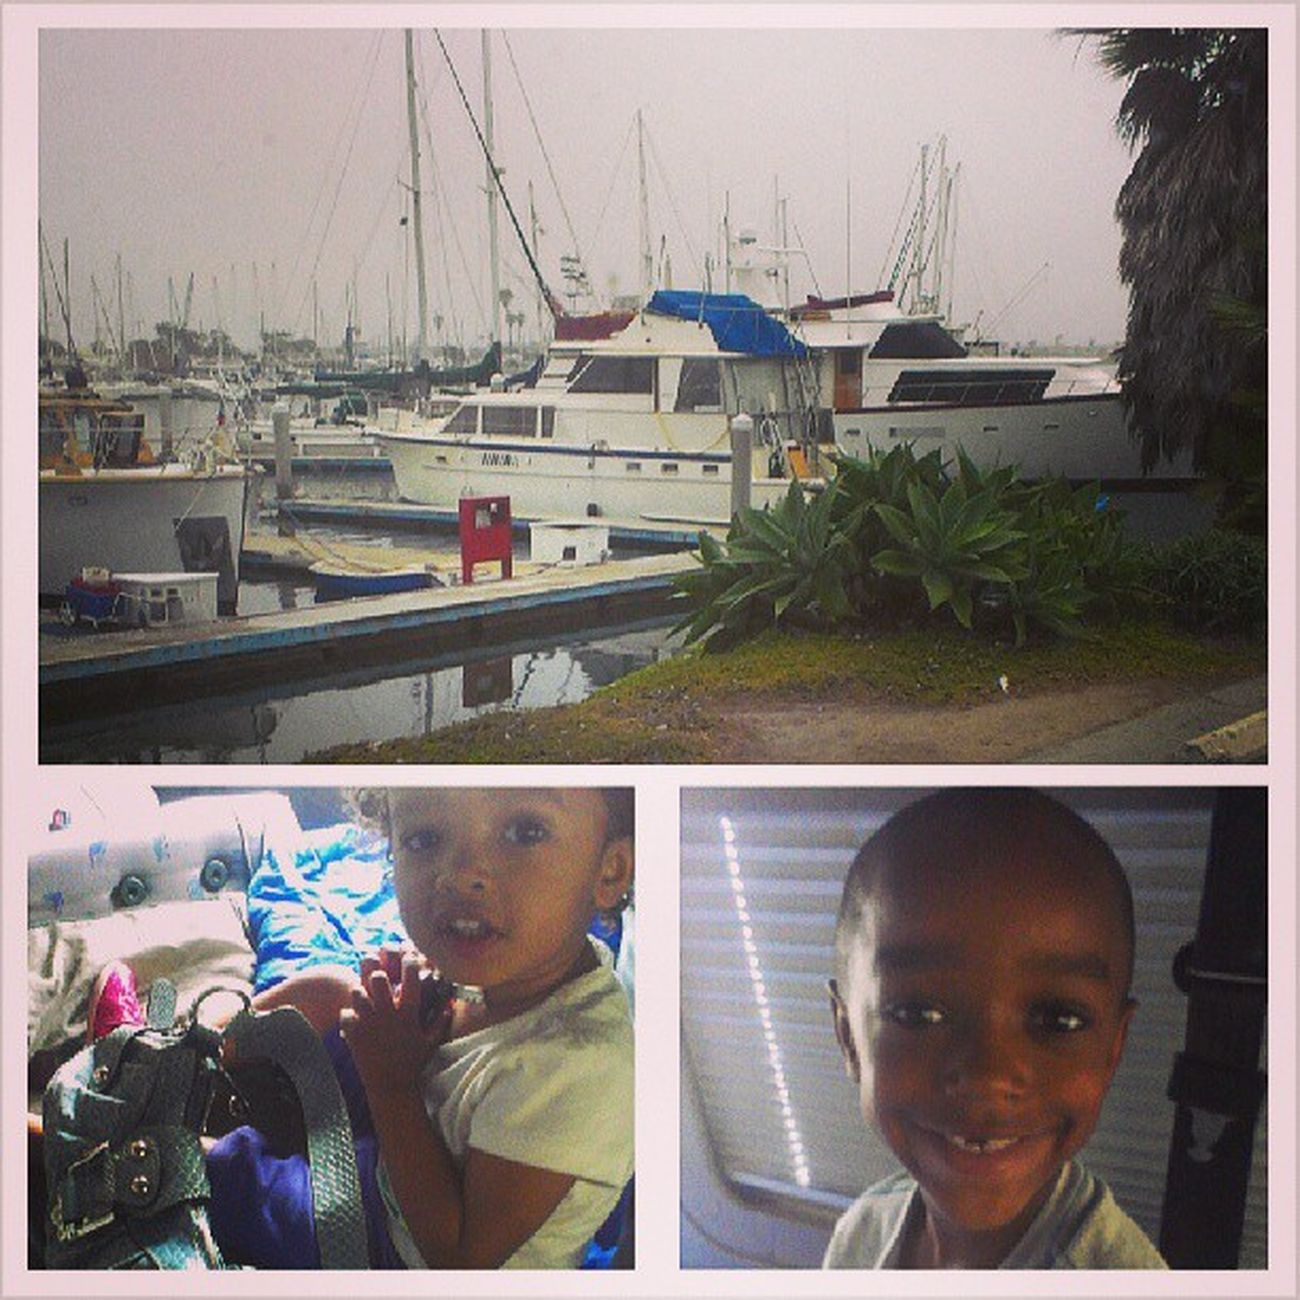 I hope it warms up enough to go swimming. The kids are having a blast though. Luxery Yachtlife Summertime Betcheslovethis Boating Richkidsofinstagram Boat Luxurylife Rkoig California Yacht FamilyTime Luxury Rkoi FamilyFun  Channelislands Summerfun Yachtclub